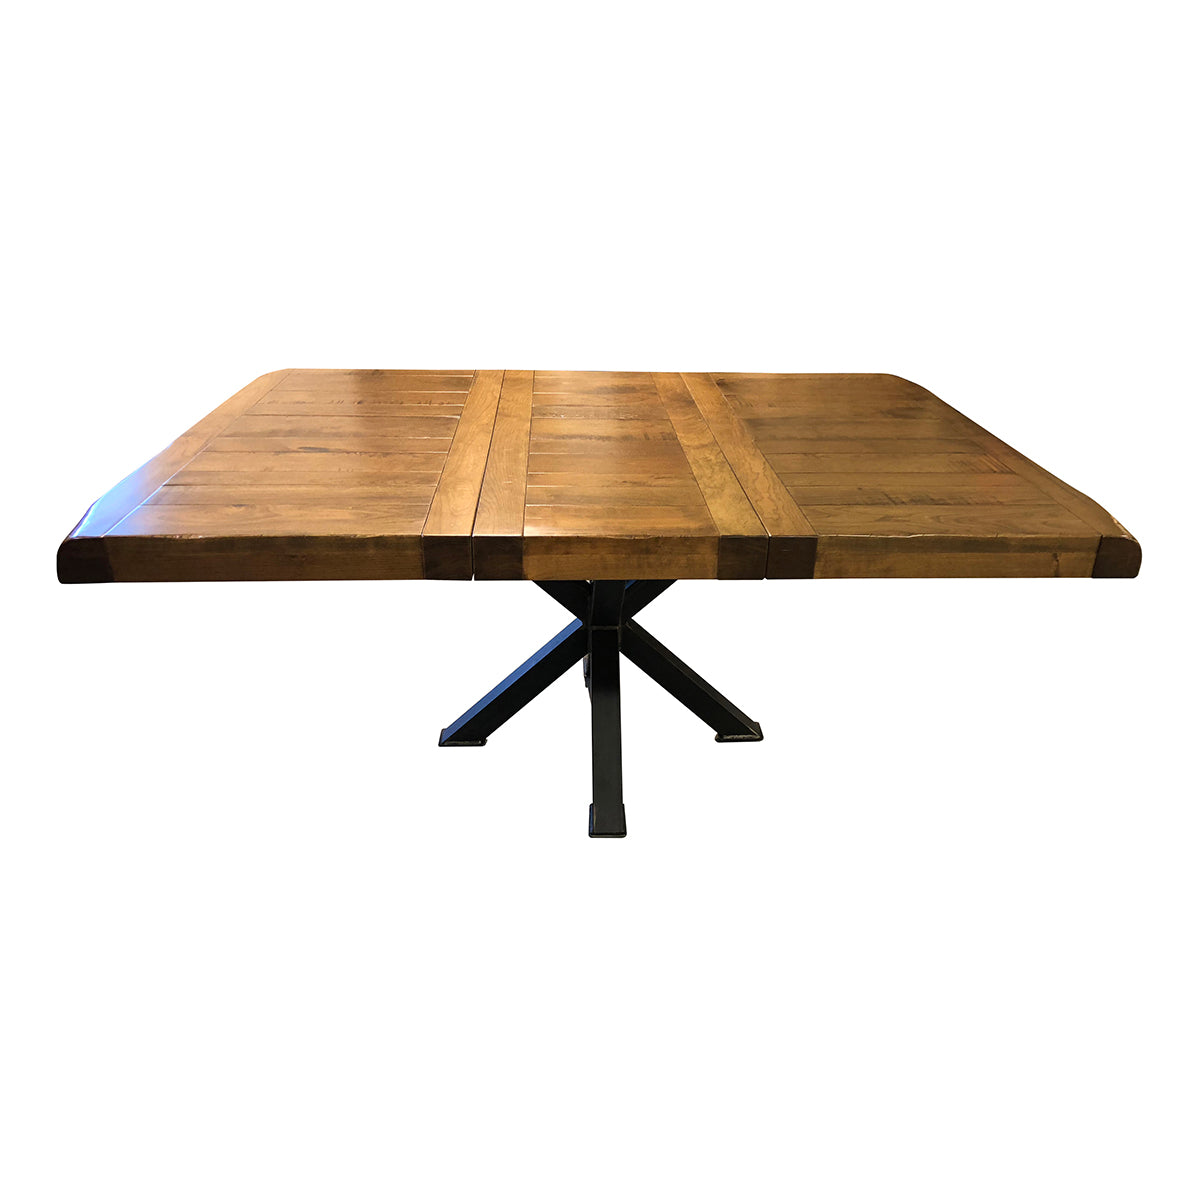 Bennet 48x48 Table, 1 Leaf, Rustic Cherry Wood, Provincial Stain - Rustic Red Door Co.